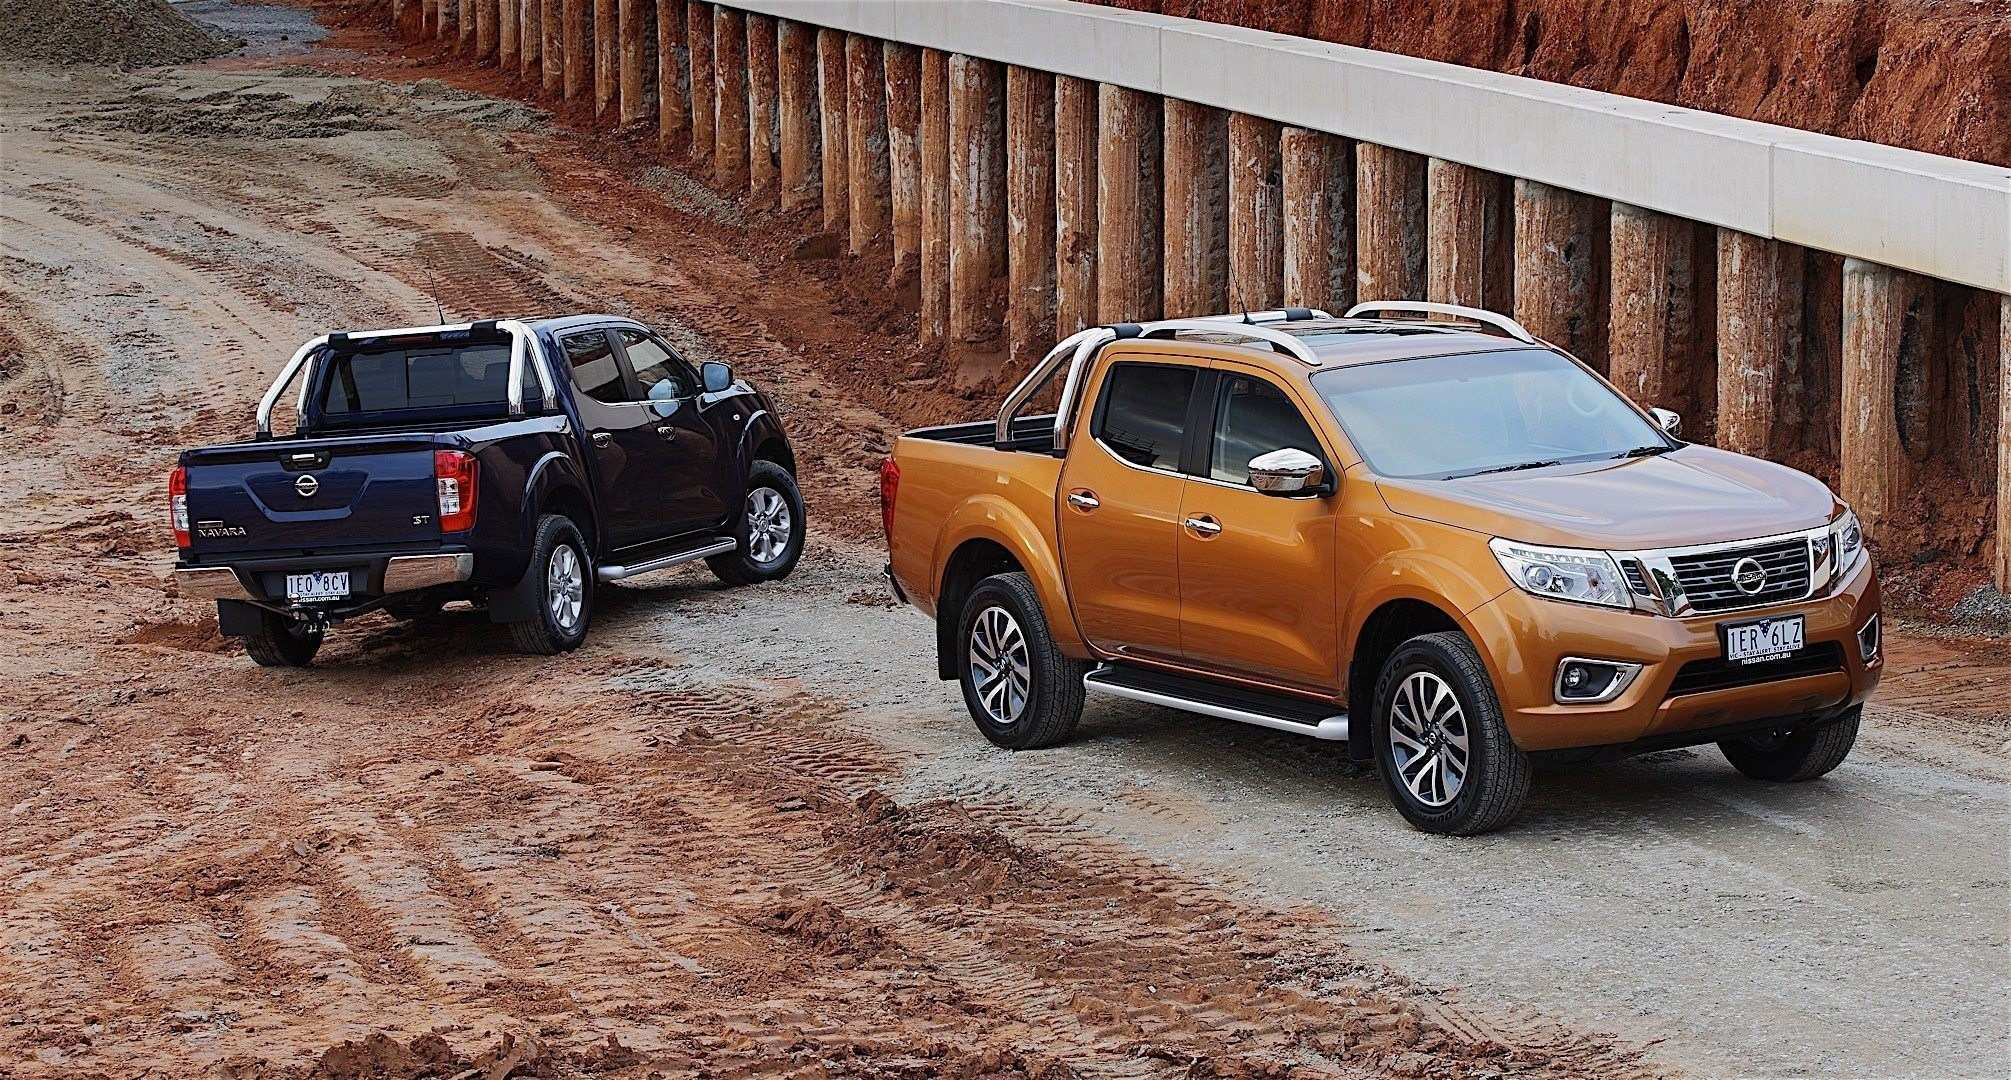 47 New New 2019 Nissan Frontier Pro 4X Release Date Price And Review Performance and New Engine by New 2019 Nissan Frontier Pro 4X Release Date Price And Review